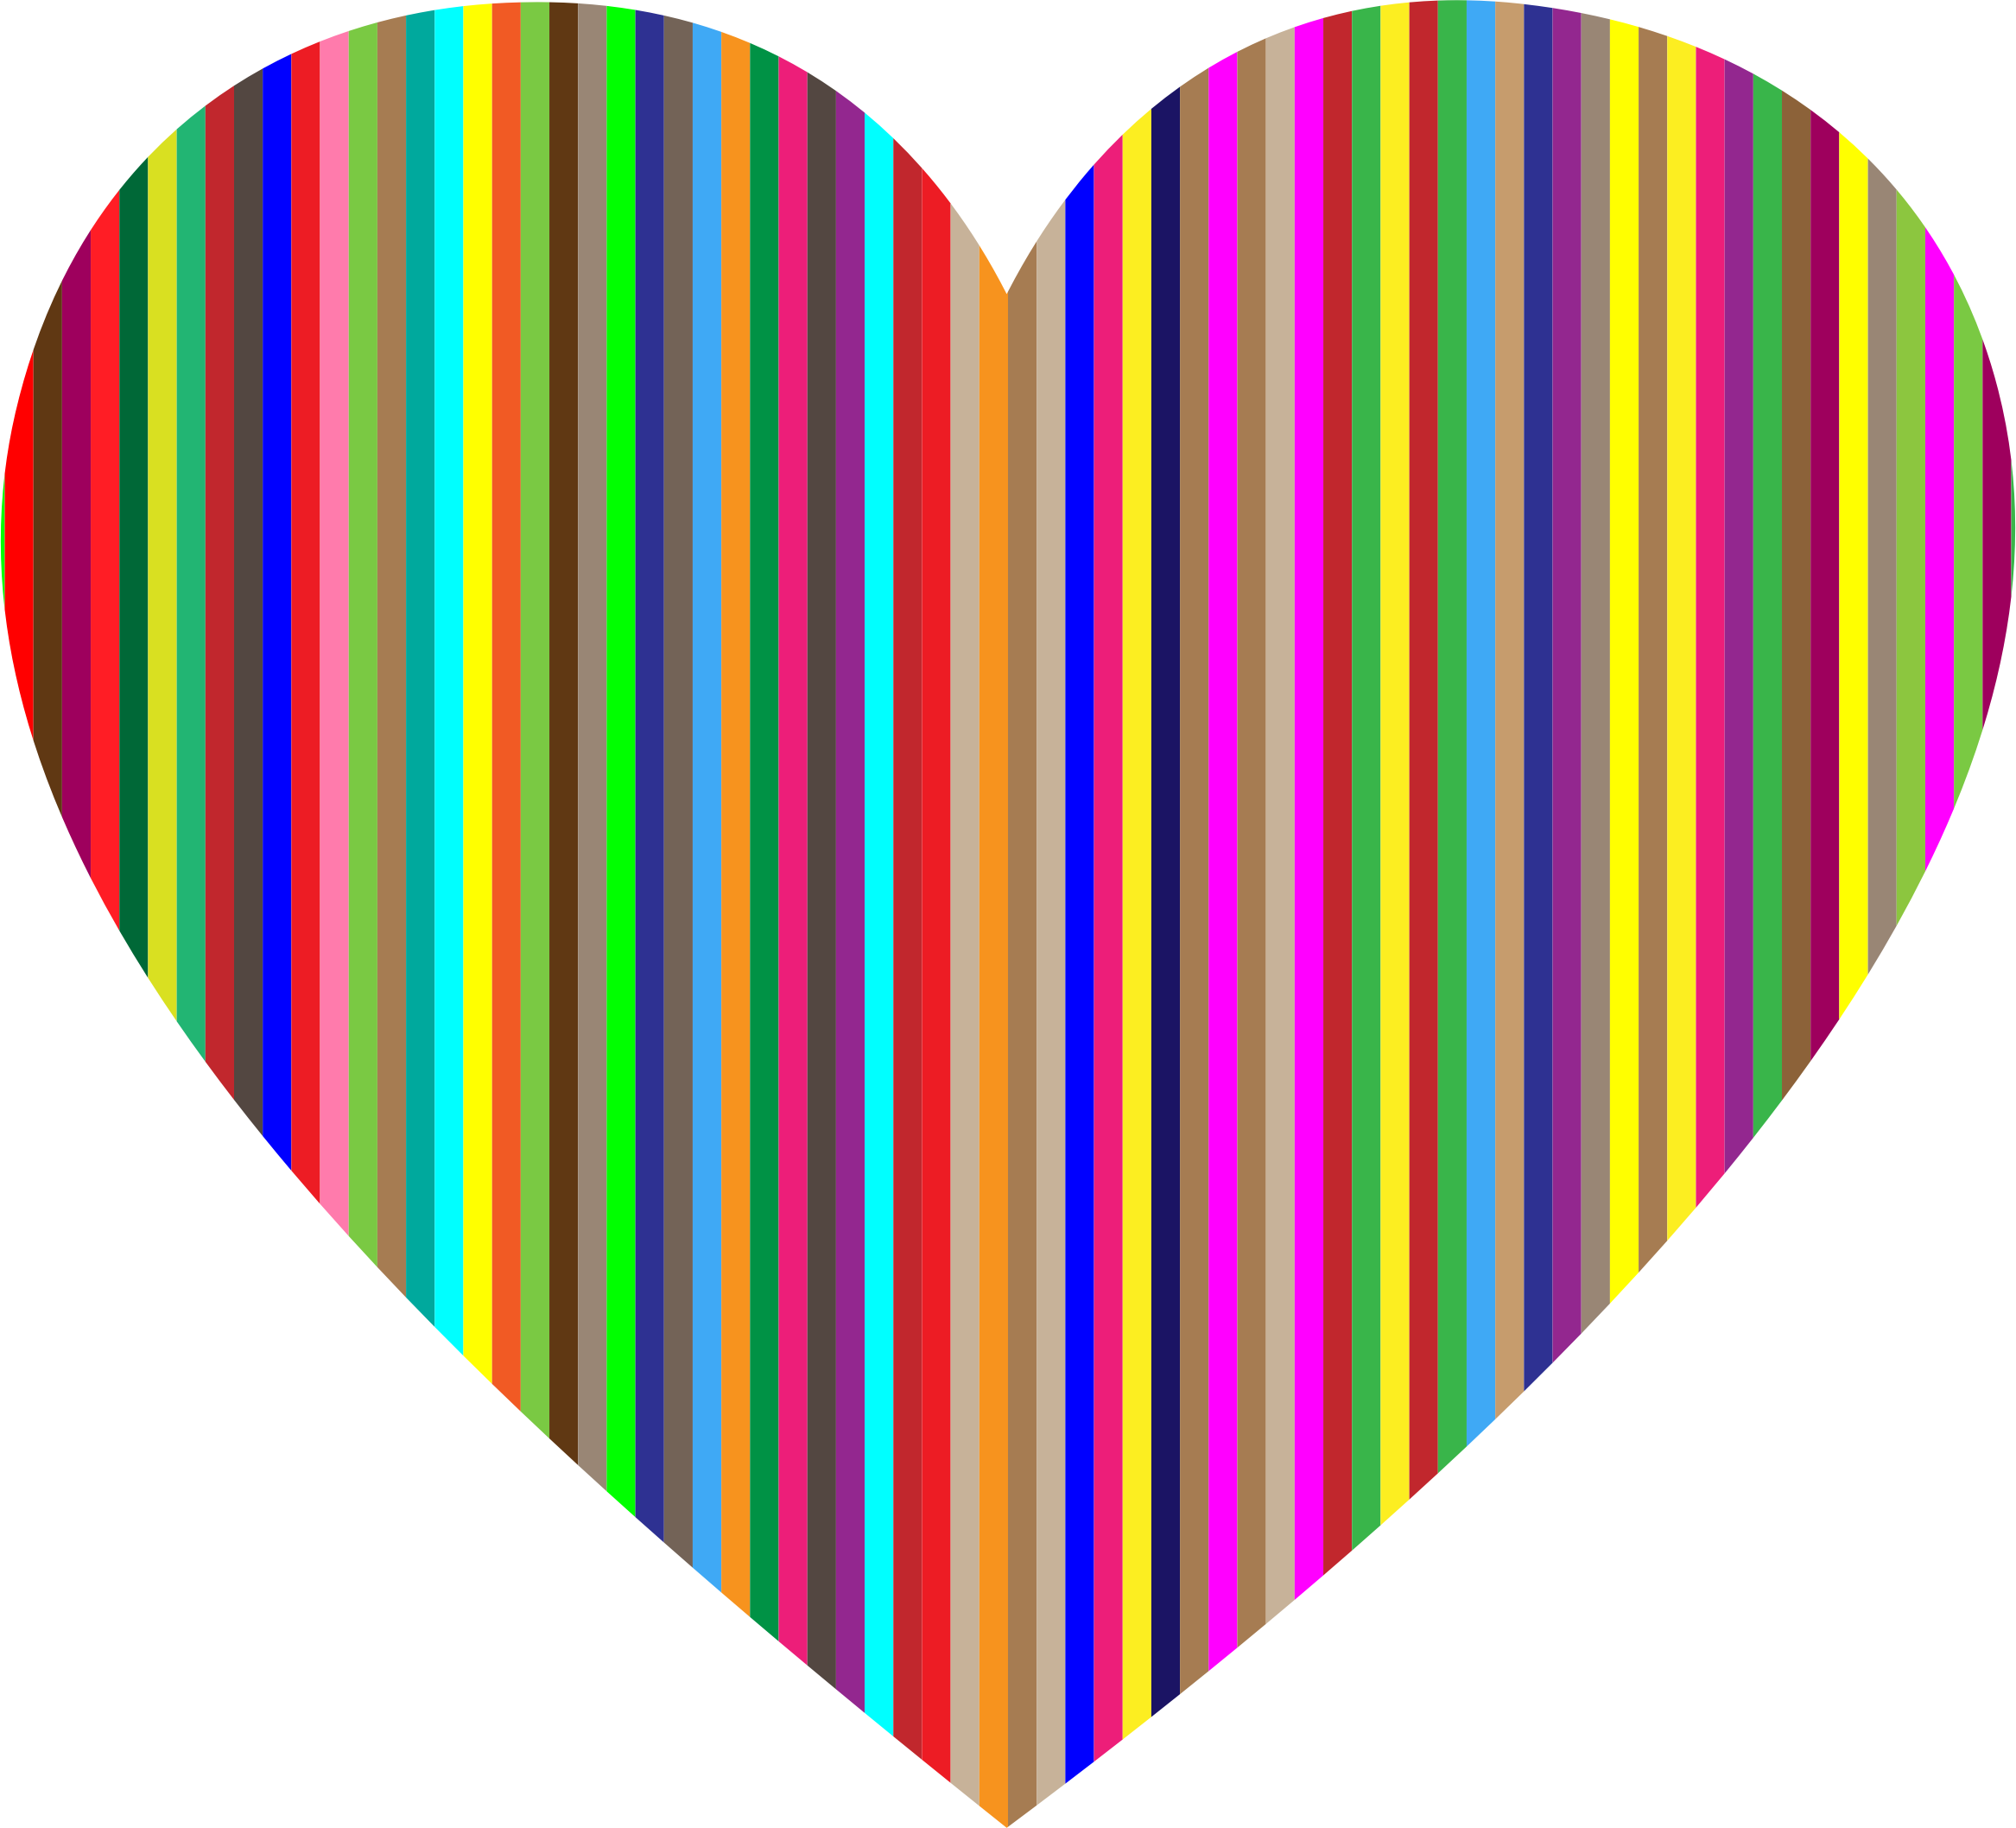 Colorful Vertical Striped Heart by GDJ